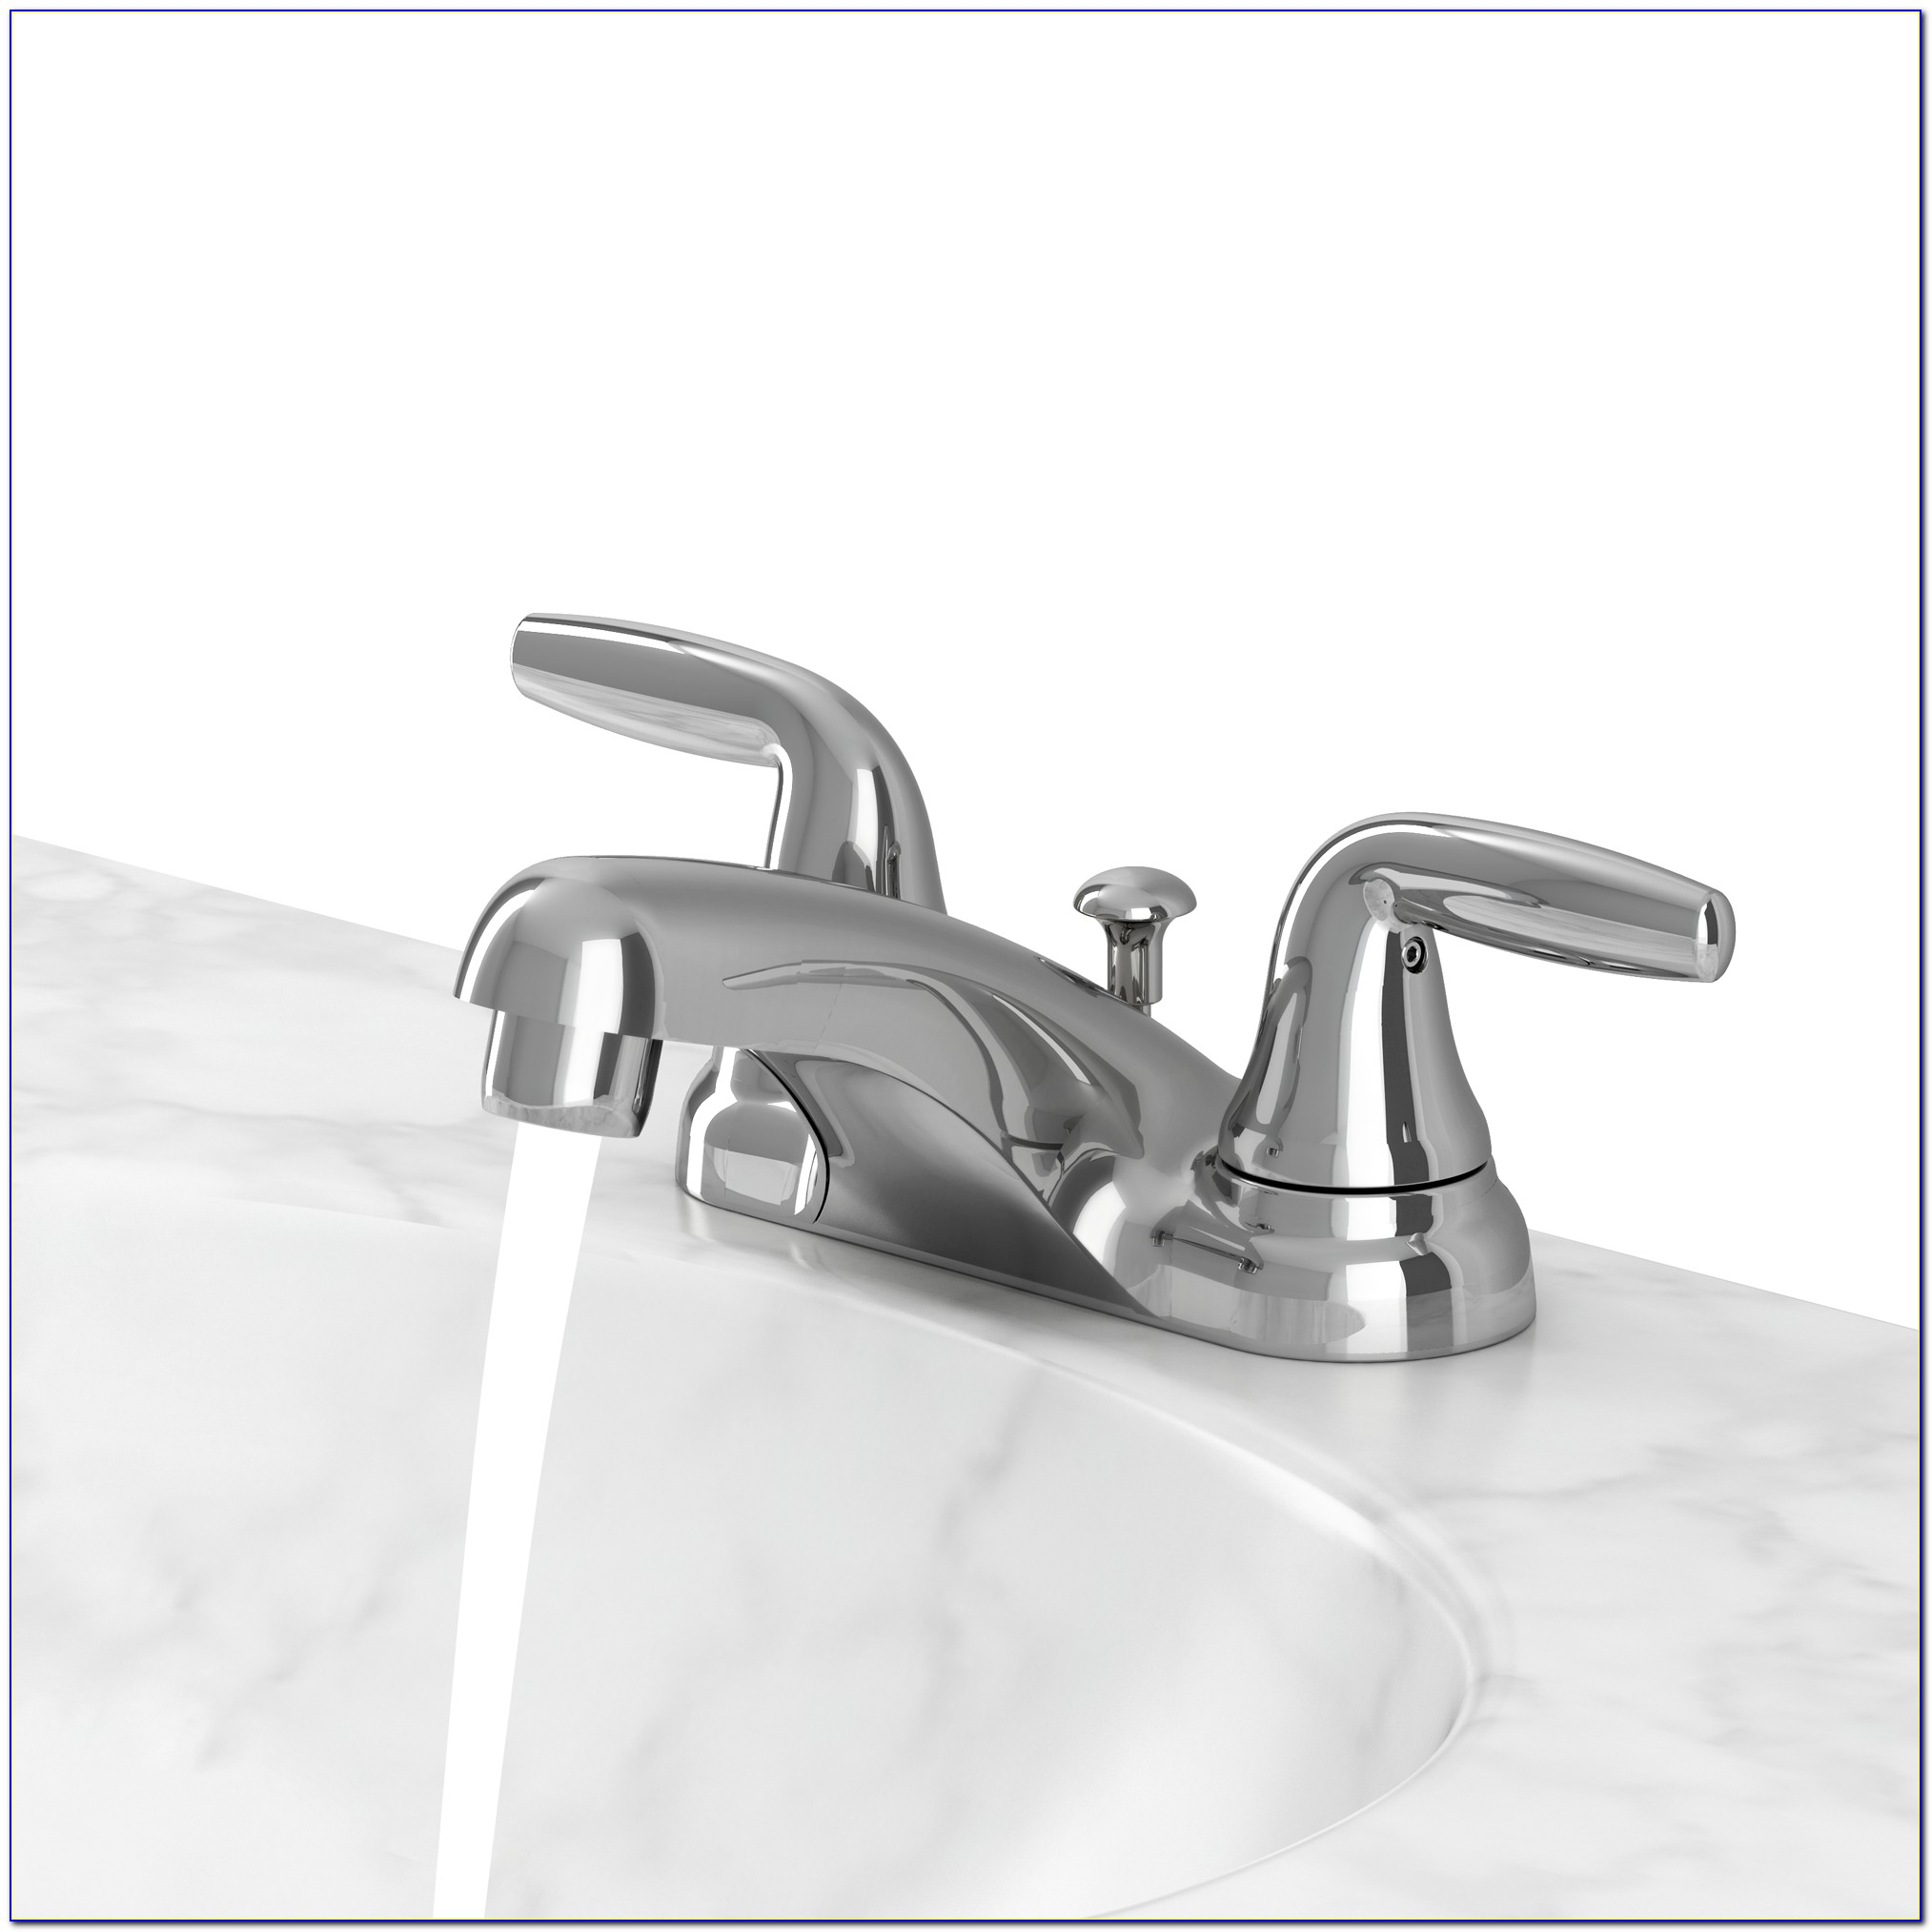 4 Inch Centerset Bathroom Faucets